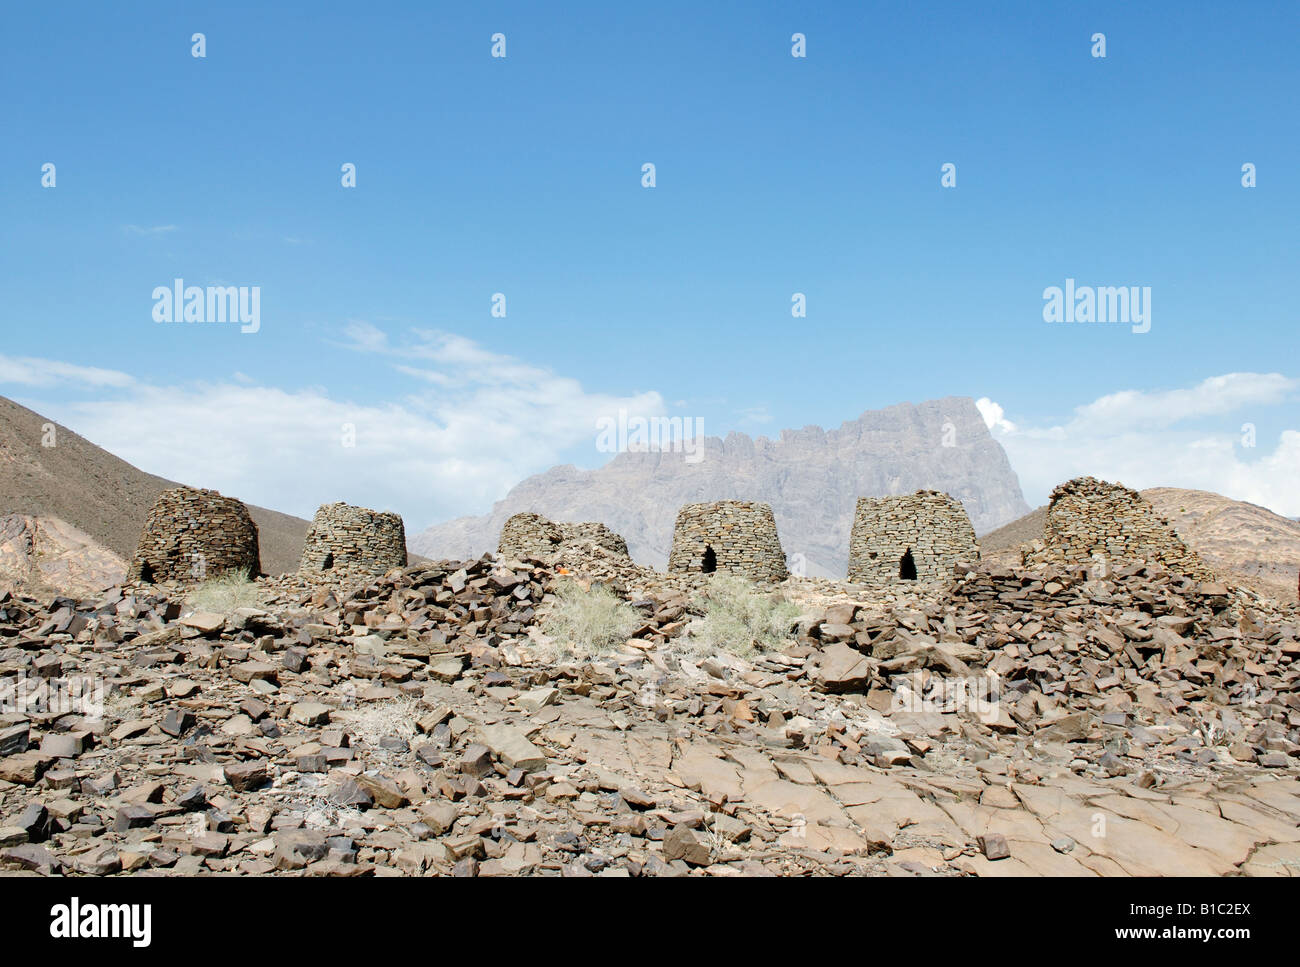 geography / travel, Oman, Al-Ayn, stone tombs, ruins in Western Hajar Mountains, Additional-Rights-Clearance-Info - Stock Image